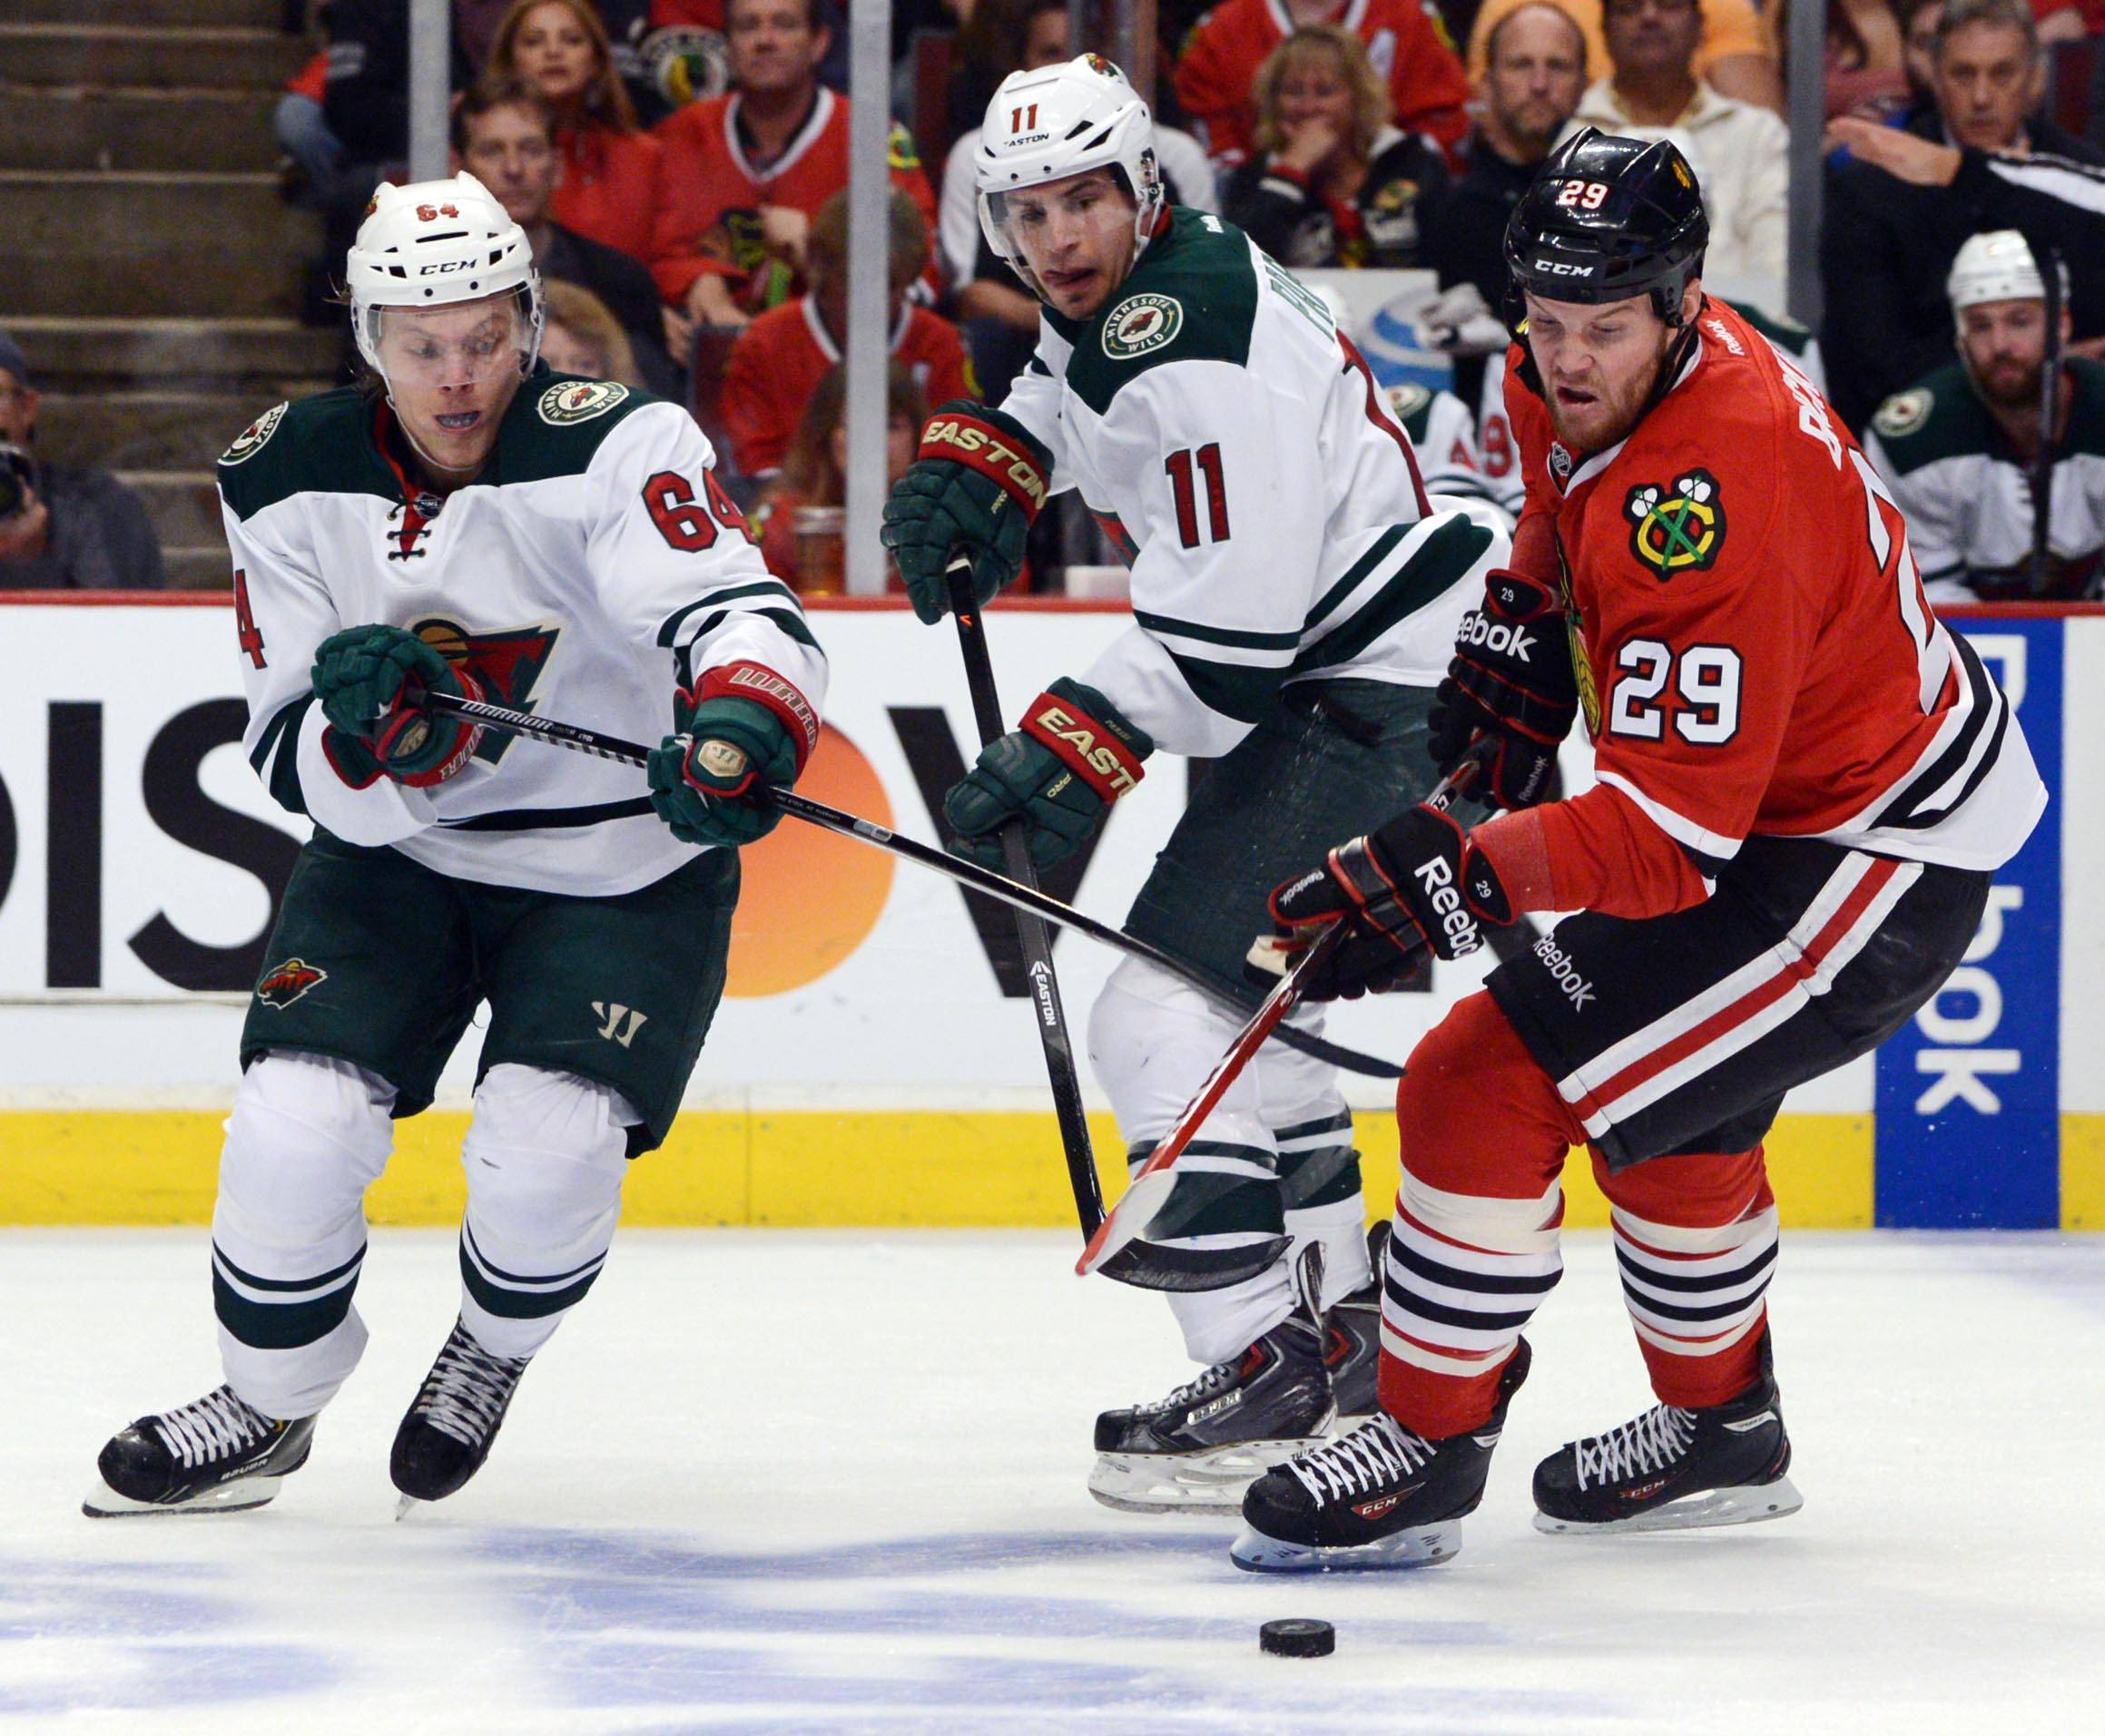 Chicago Blackhawks left wing Bryan Bickell fights for the puck against Minnesota Wild center Mikael Granlund and left wing Zach Parise Sunday in Game 5 of round 2 of the Stanley Cup Playoffs at the United Center in Chicago.